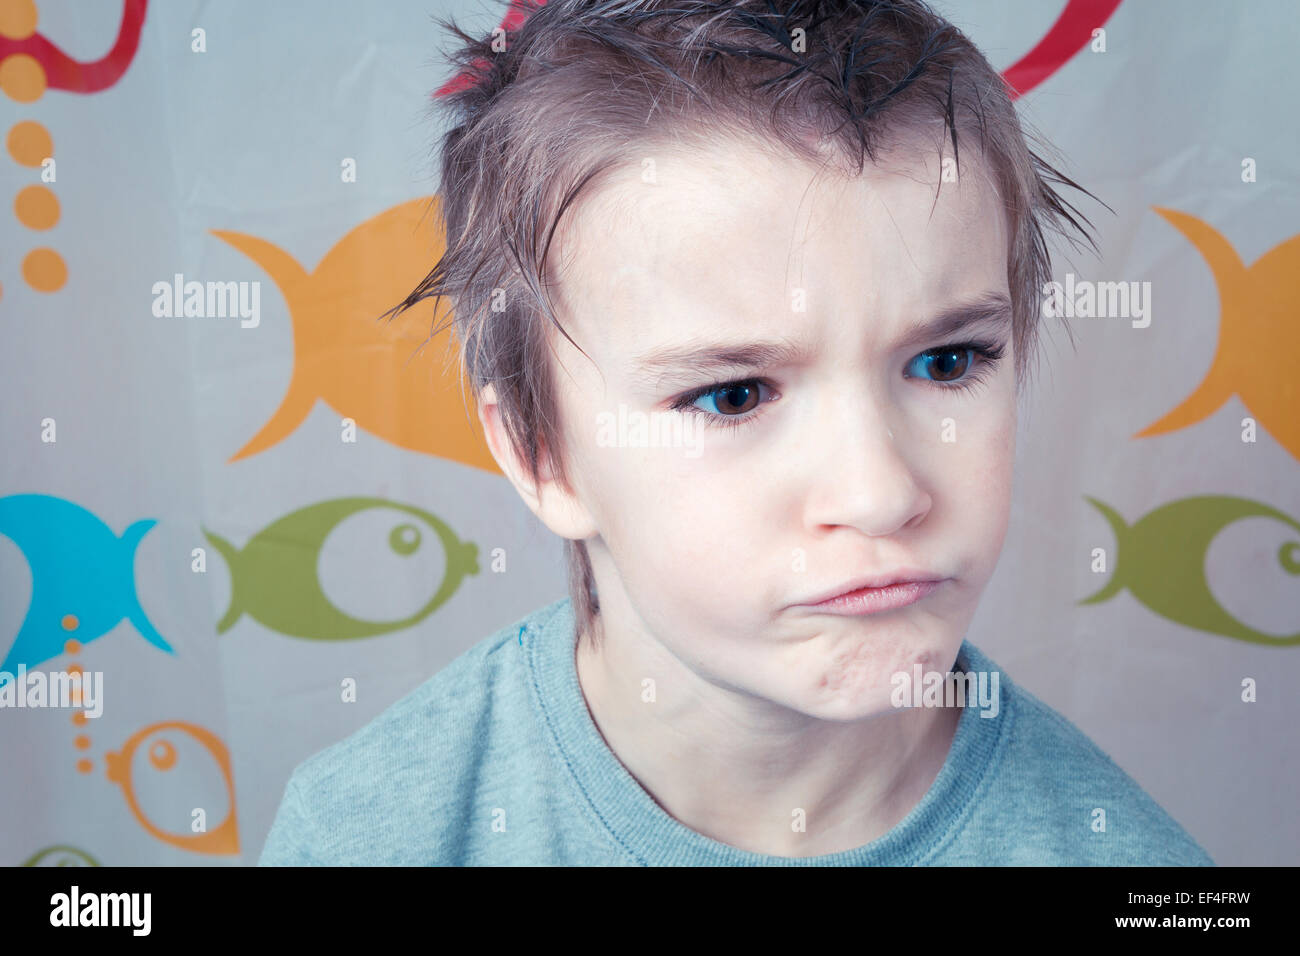 Young boy in bathroom making a face. - Stock Image